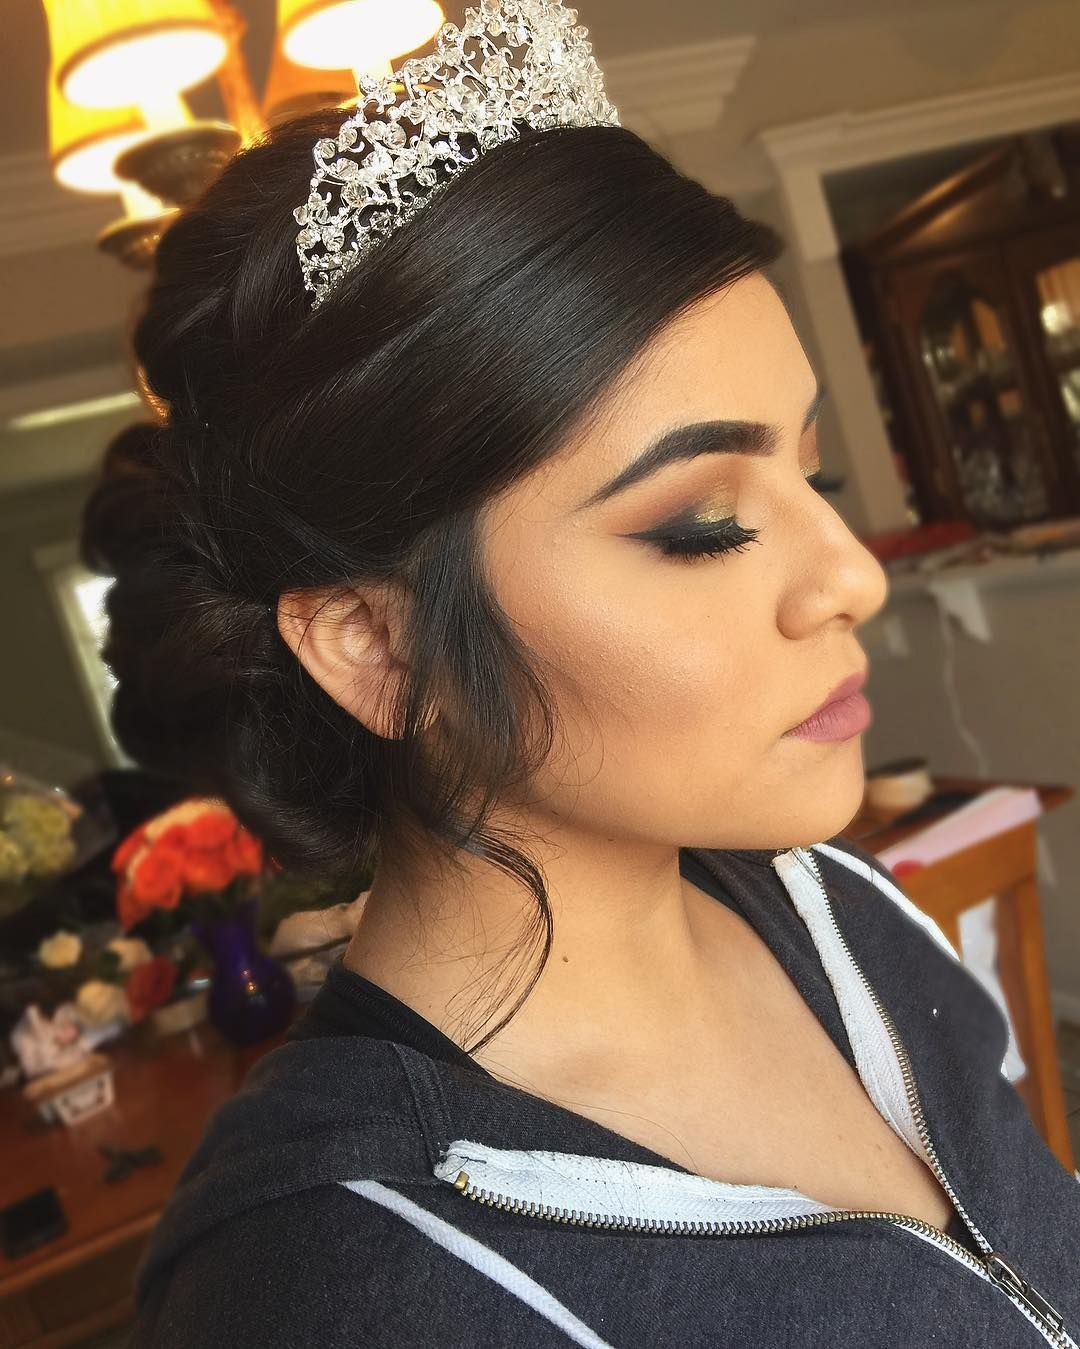 Quinceanera Hairstyles Cool 20 Absolutely Stunning Quinceanera Hairstyles With Crown  Pinterest